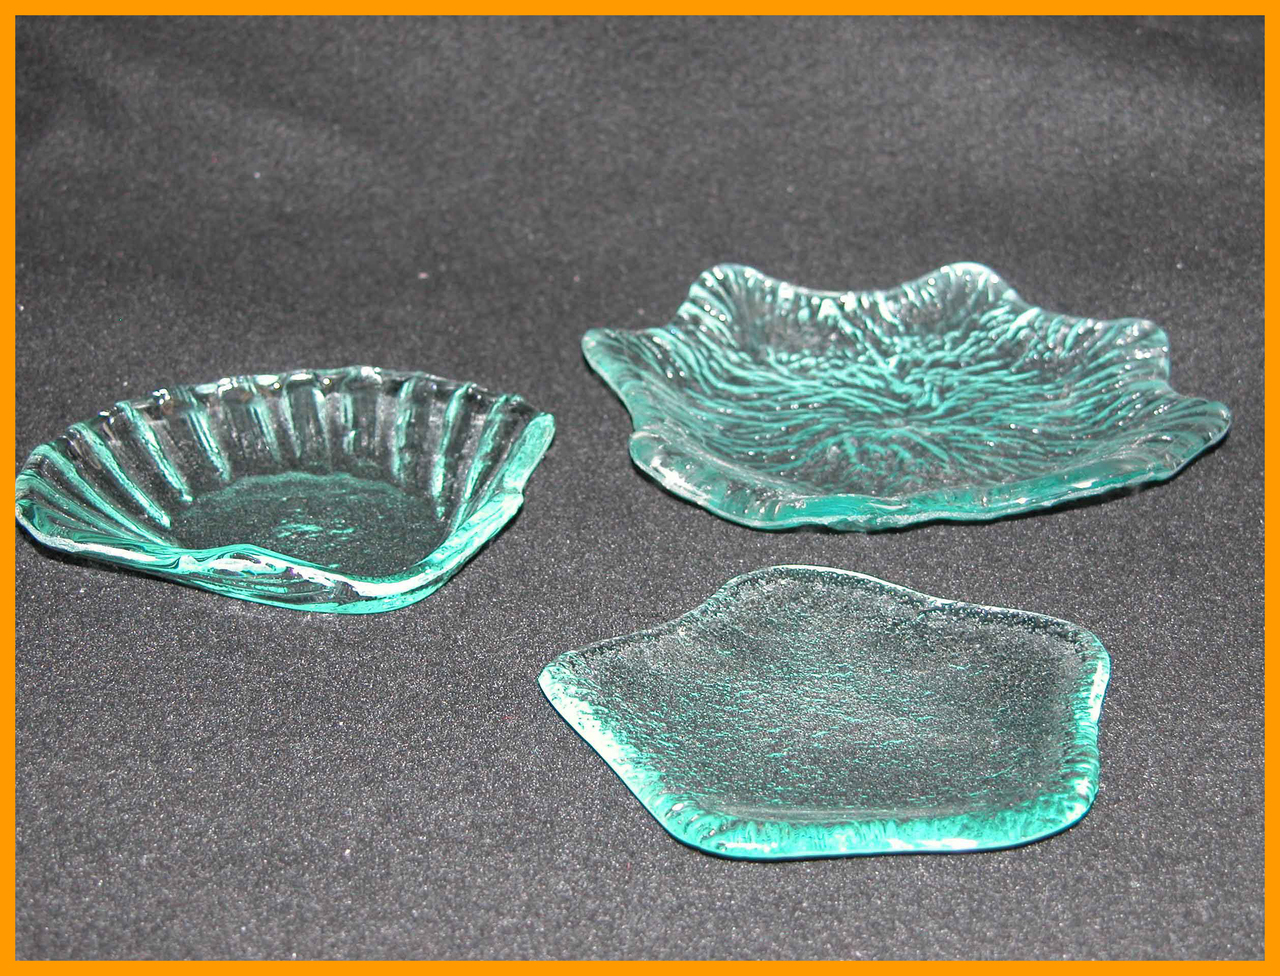 3 Piece Candy/Soap Dish Set (Star, Sea Shell and Leaf), Textured